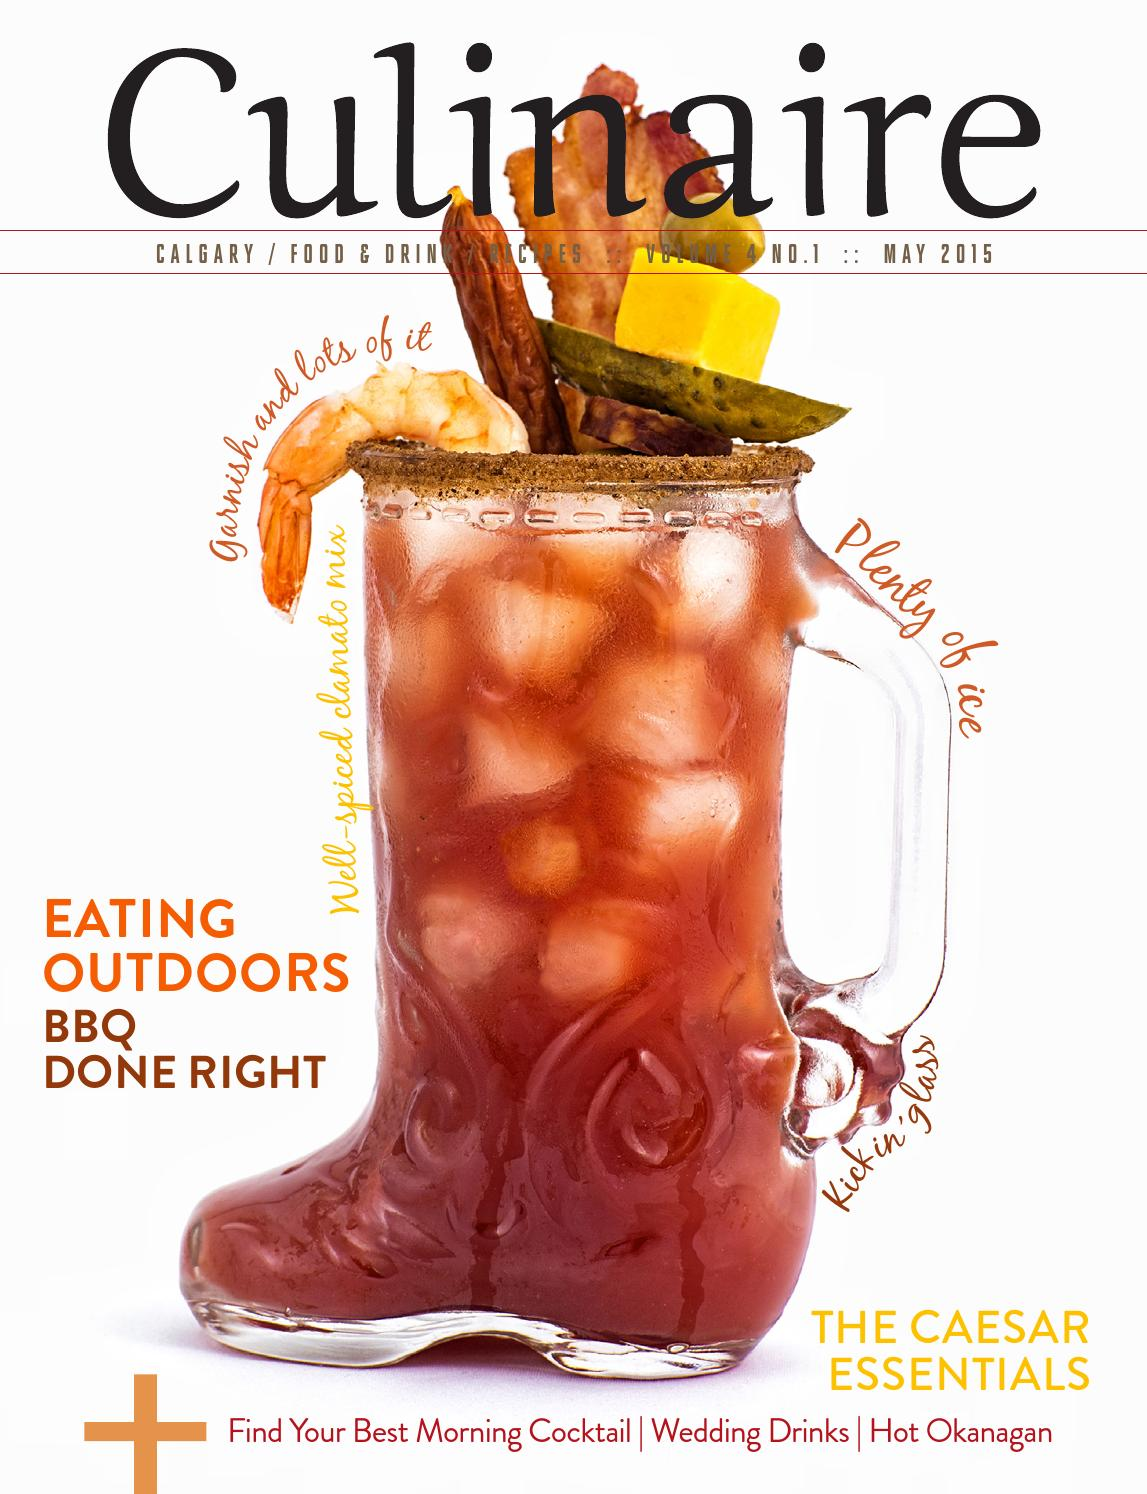 Culinaire 4 1 may 2015 by culinaire magazine issuu for Culinaire